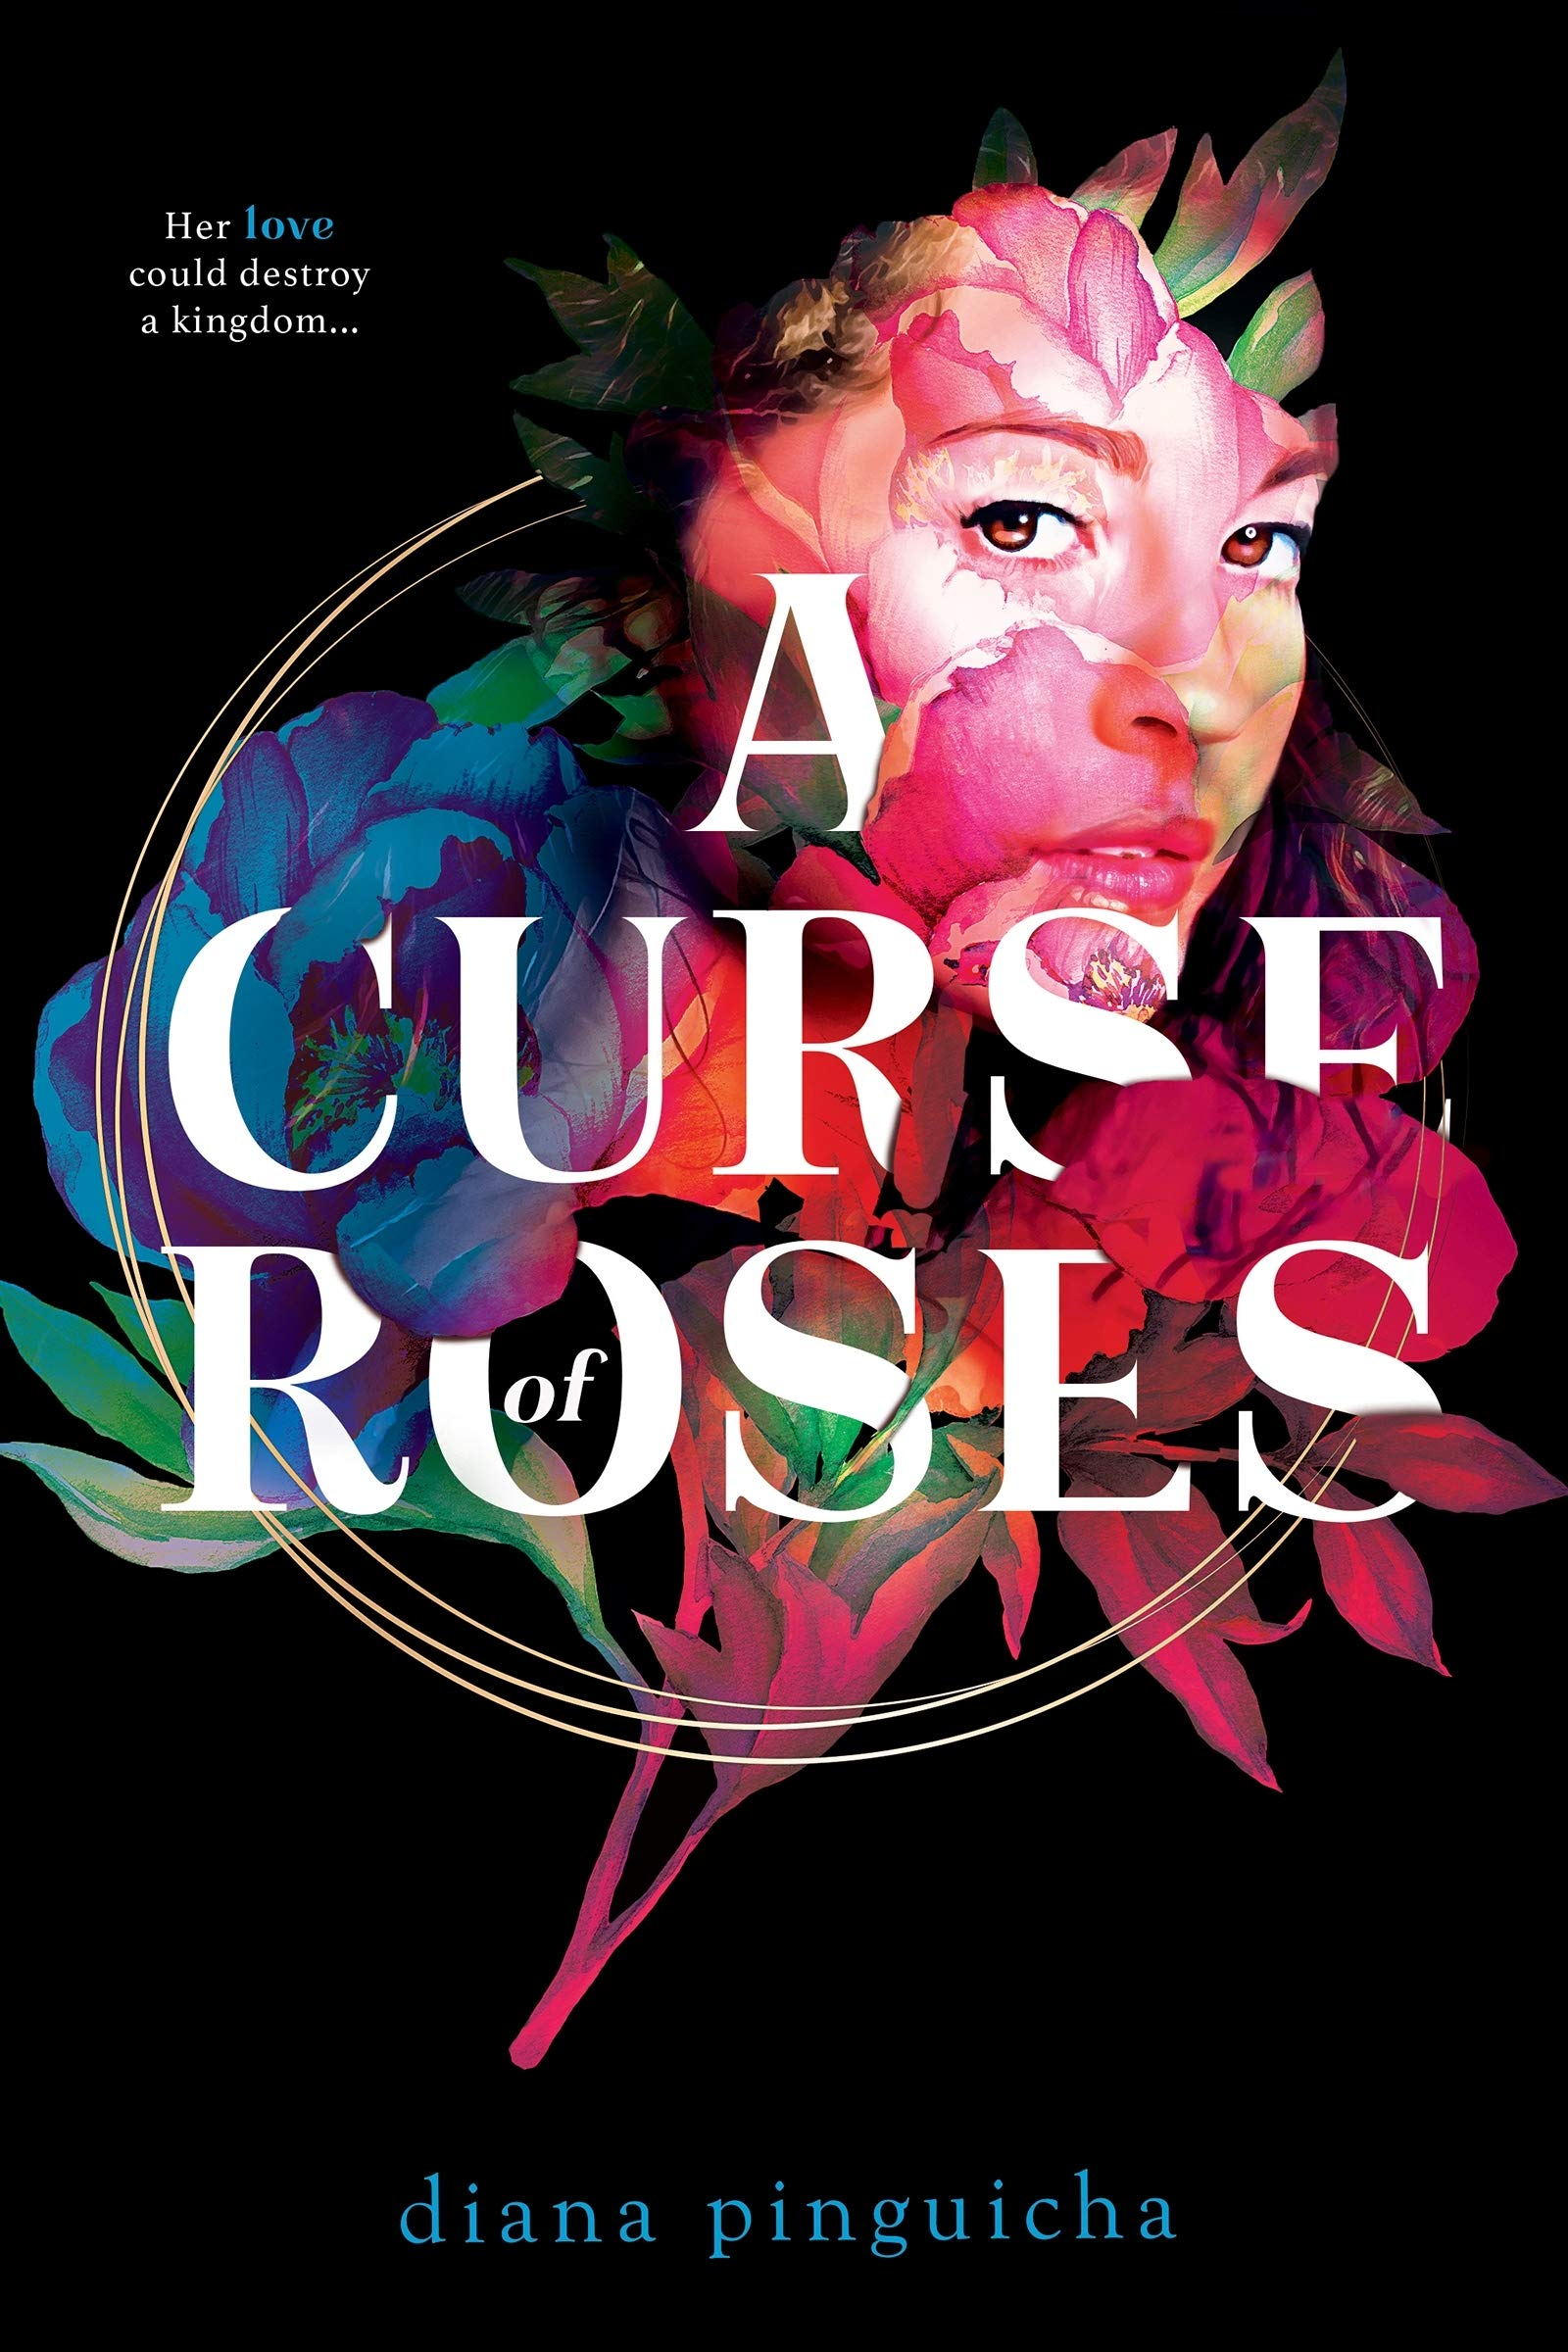 This is an image of the cover of A Curse of Roses by Diana Pinguicha